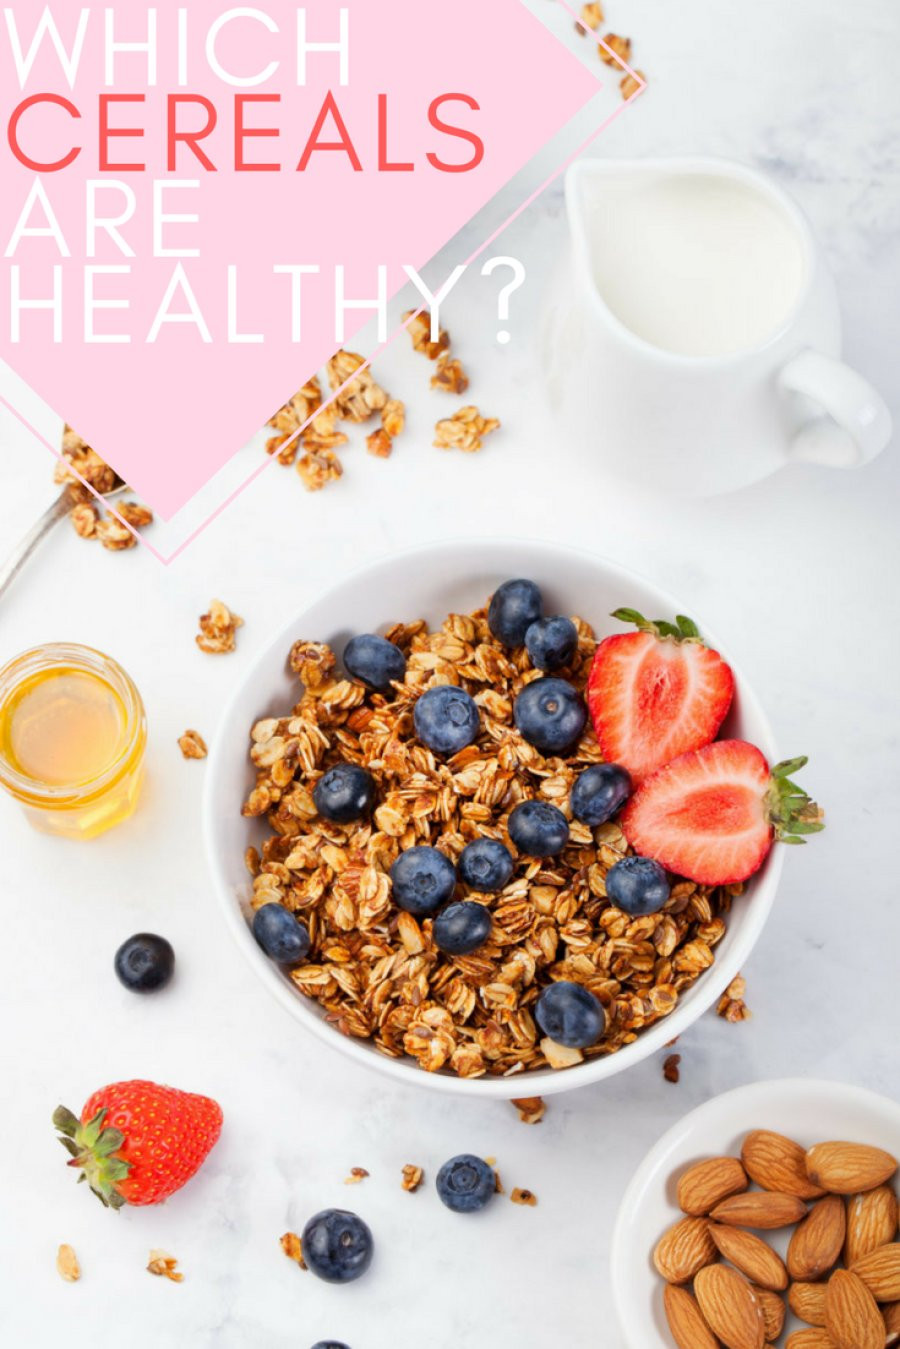 Healthy Breakfast Cereals  Here Are The Breakfast Cereals That Are Actually Healthy